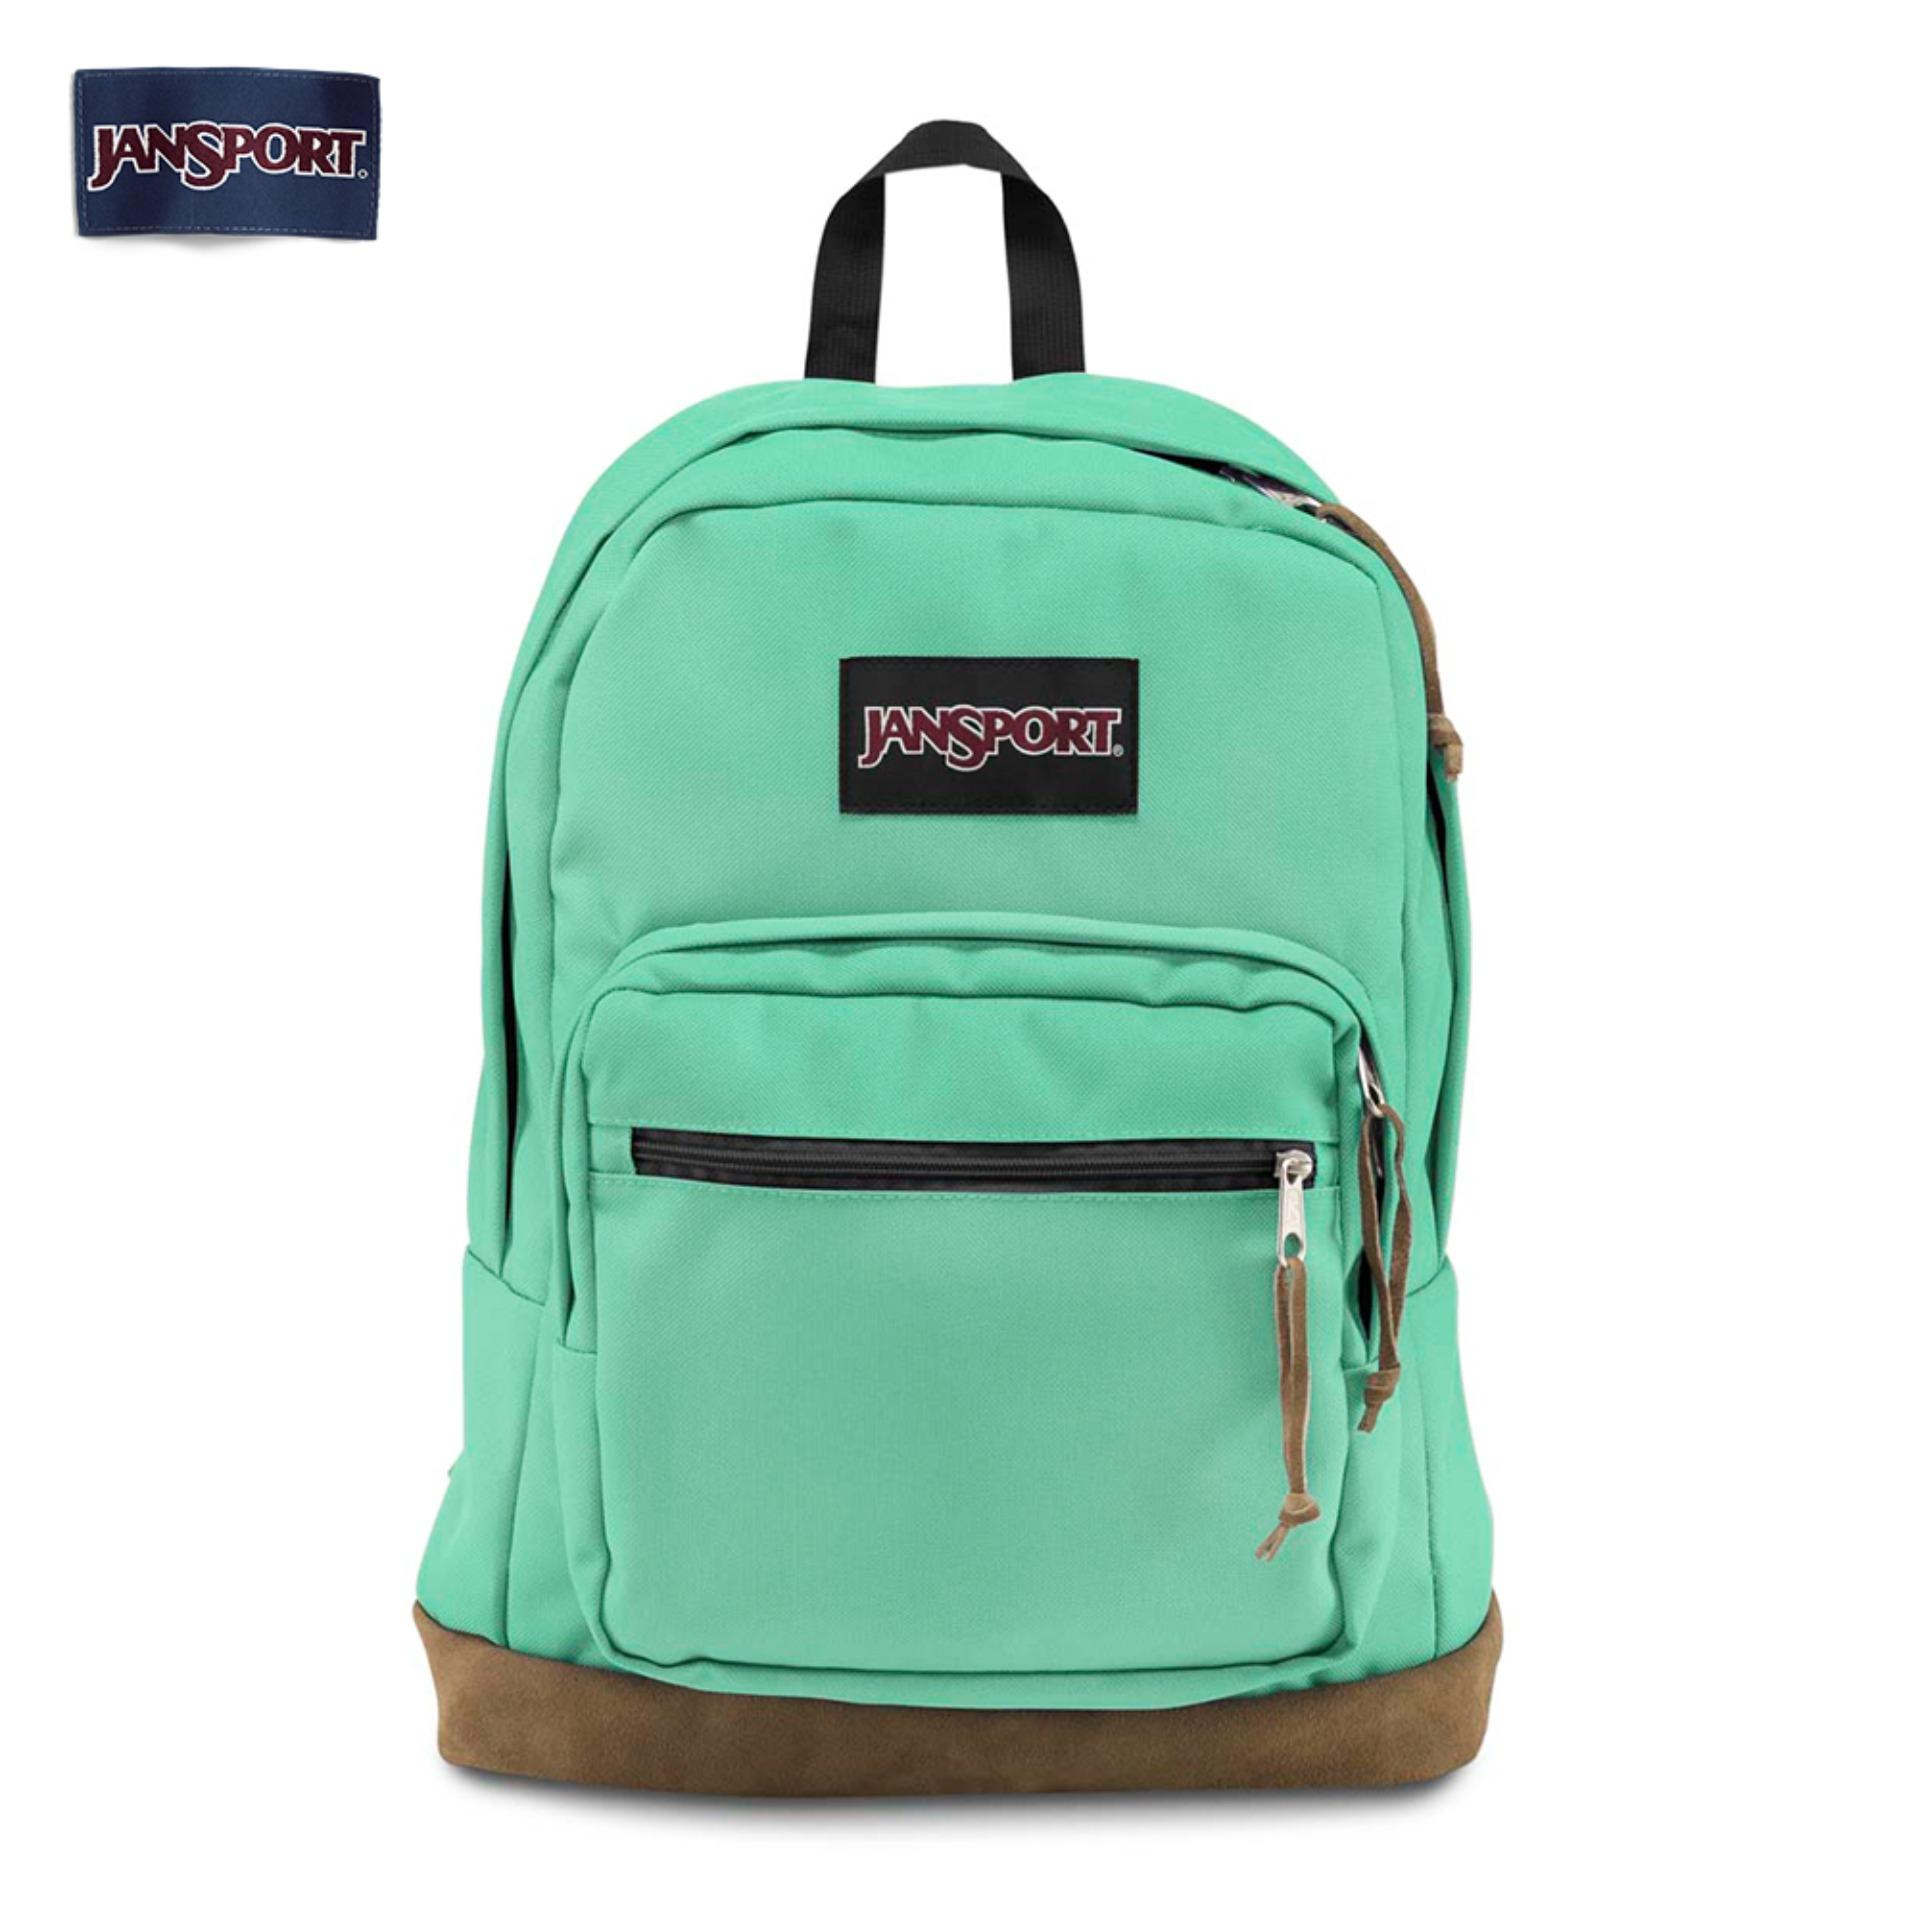 Jansport Backpack Sale Philippines - Swiss Paralympic